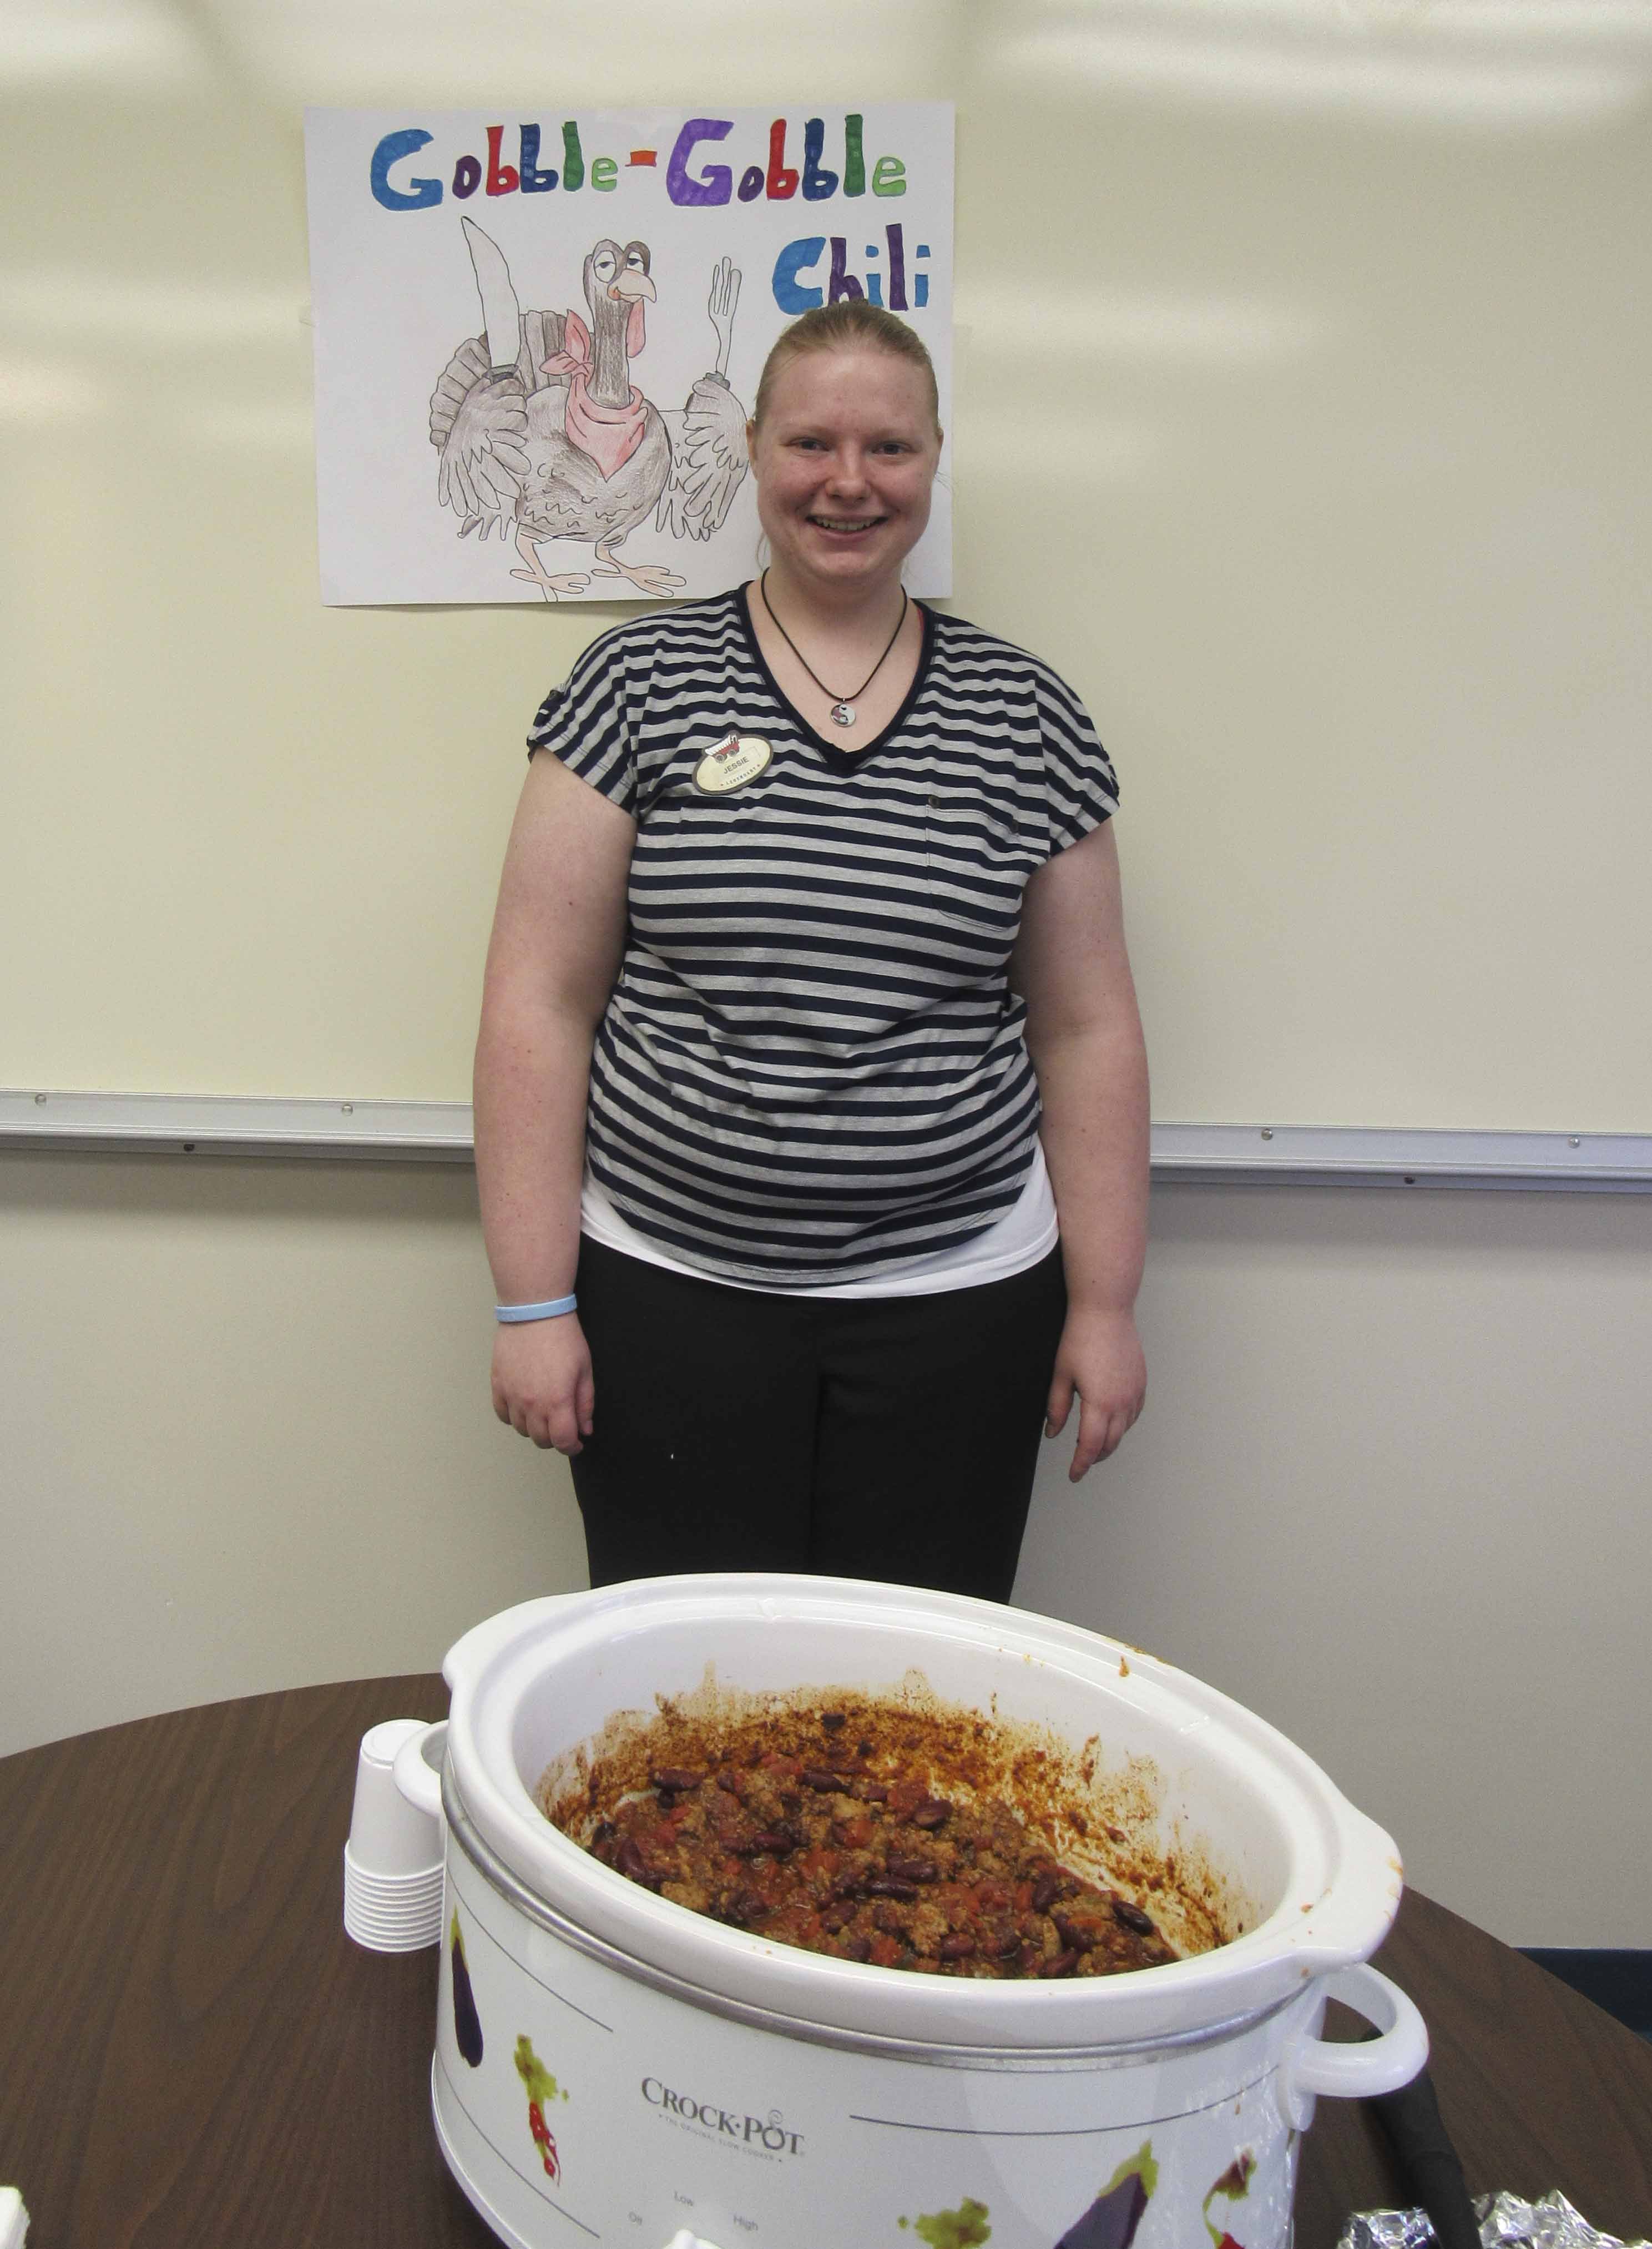 Jessie Hess was second place with her Gobble Gobble (turkey) Chili.